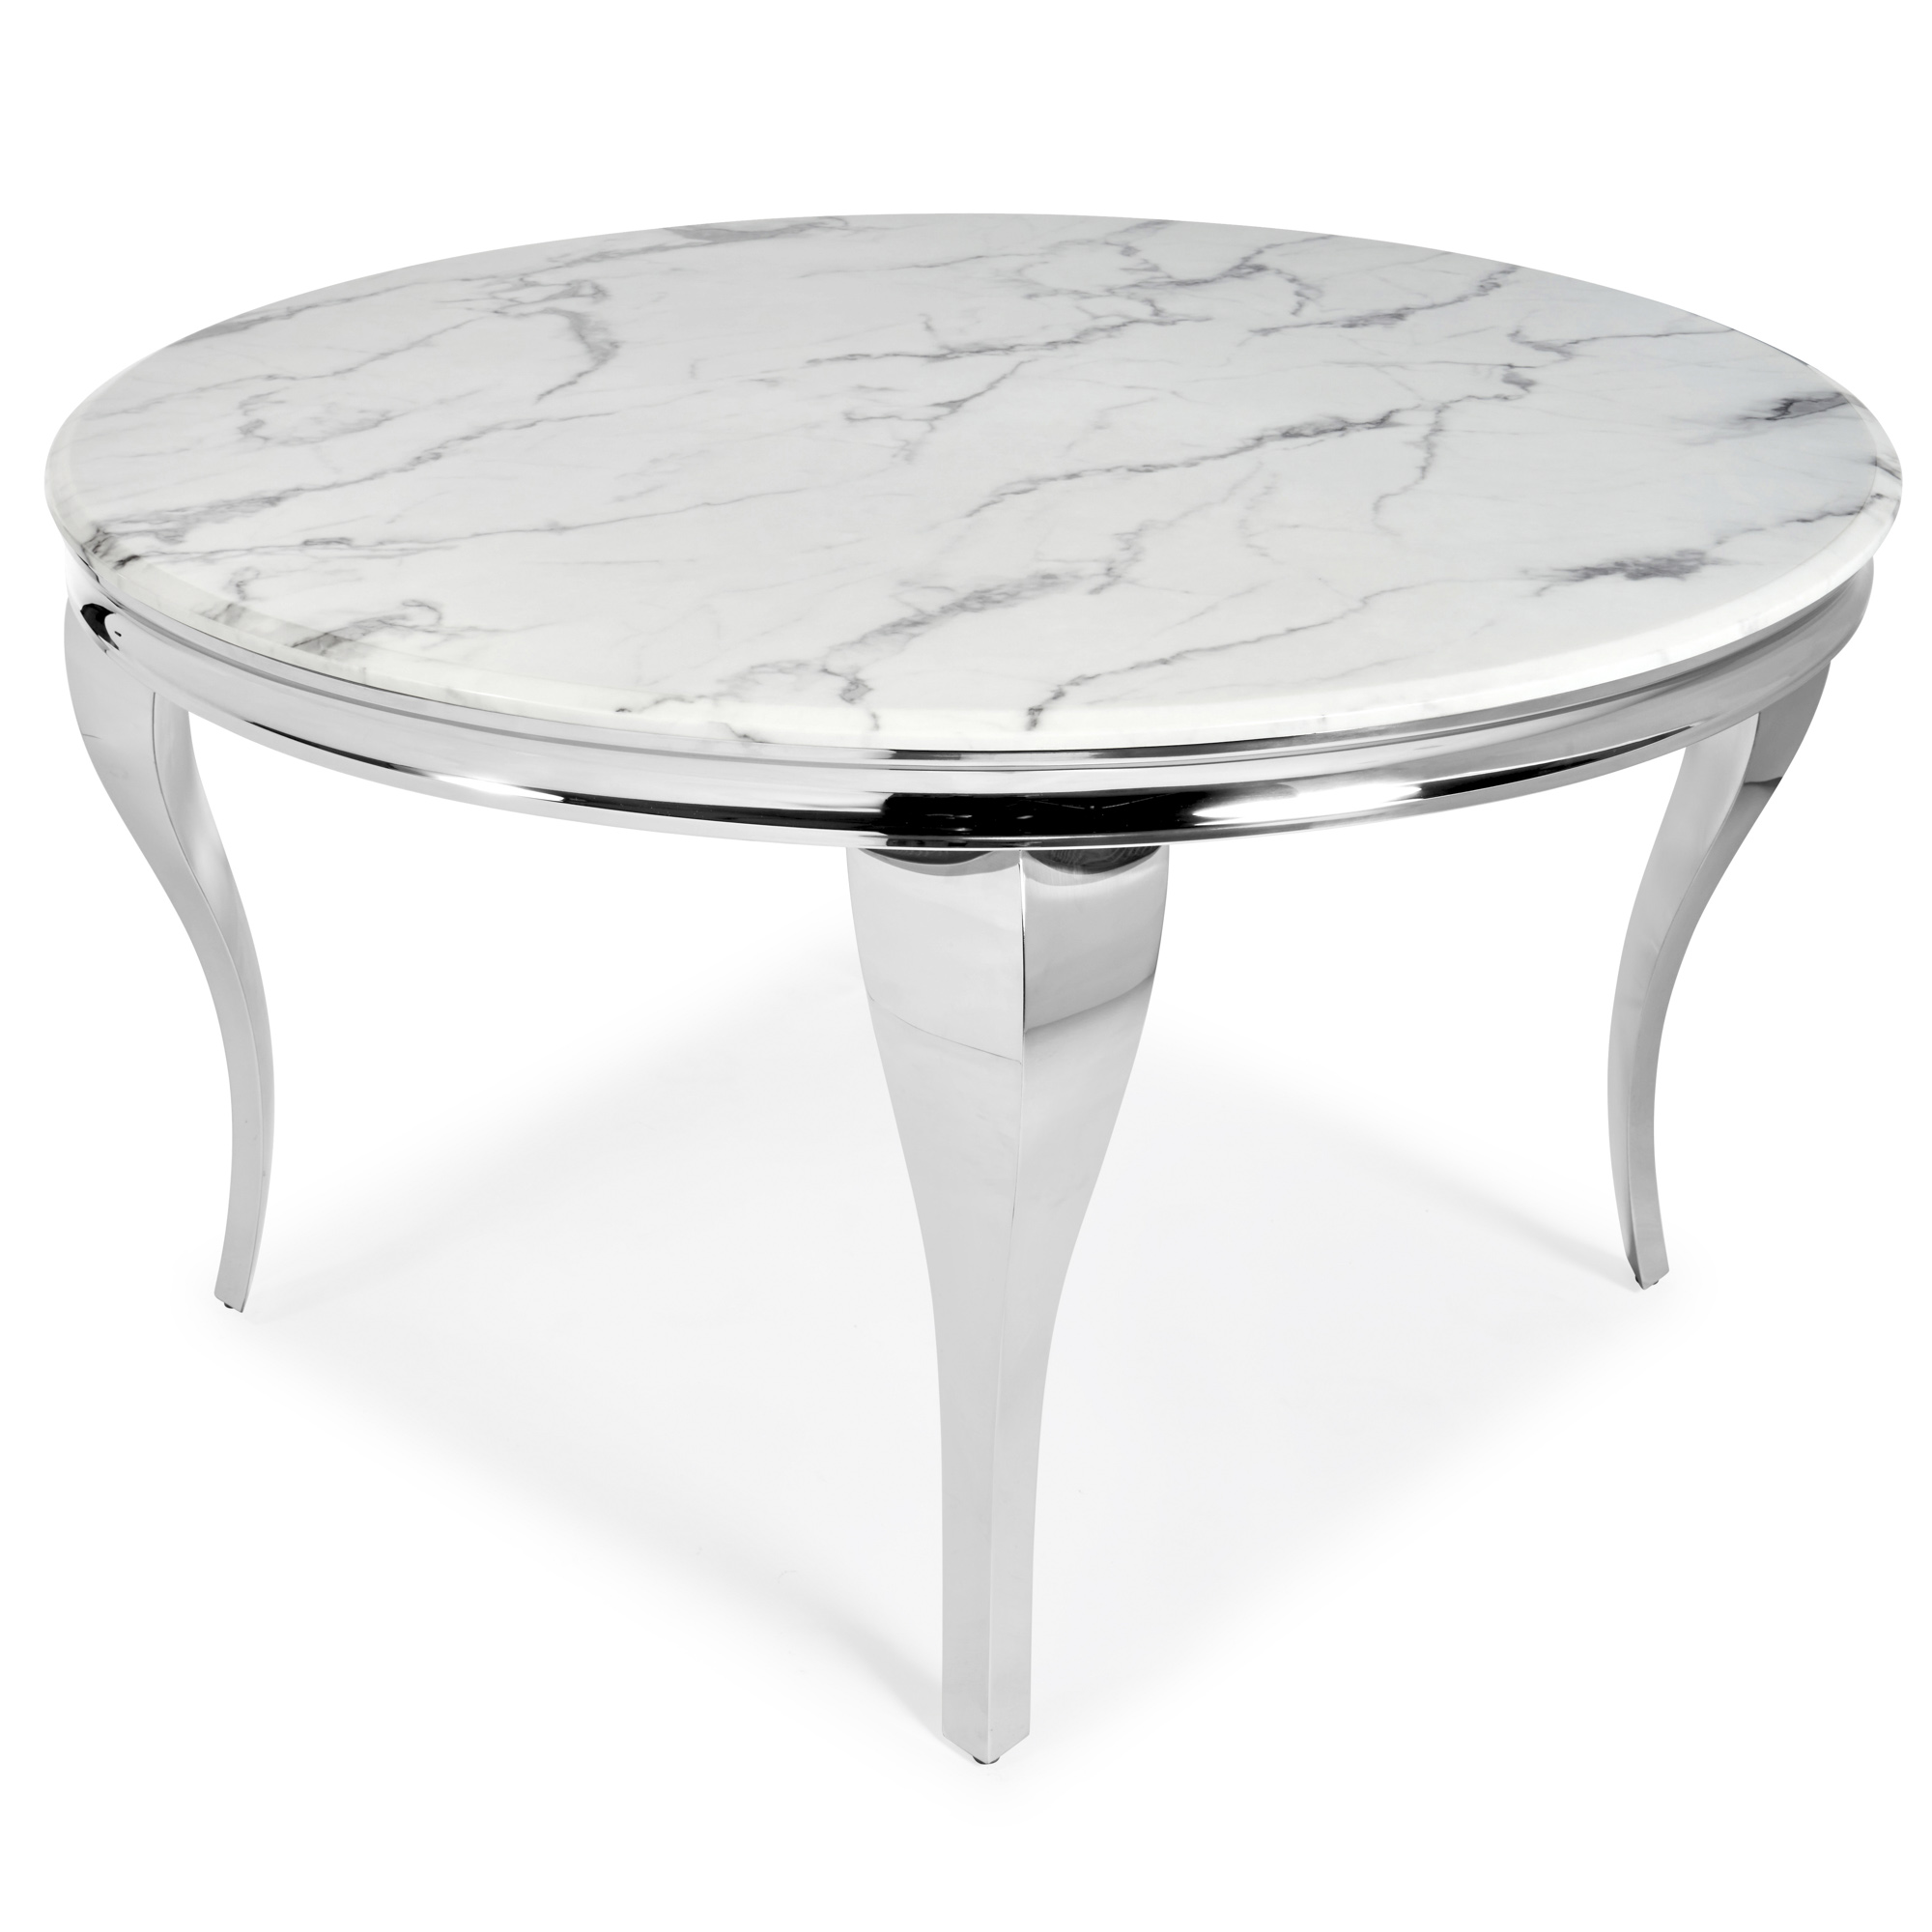 1.3m Round White Marble Dining Table x Set of 4 Chairs